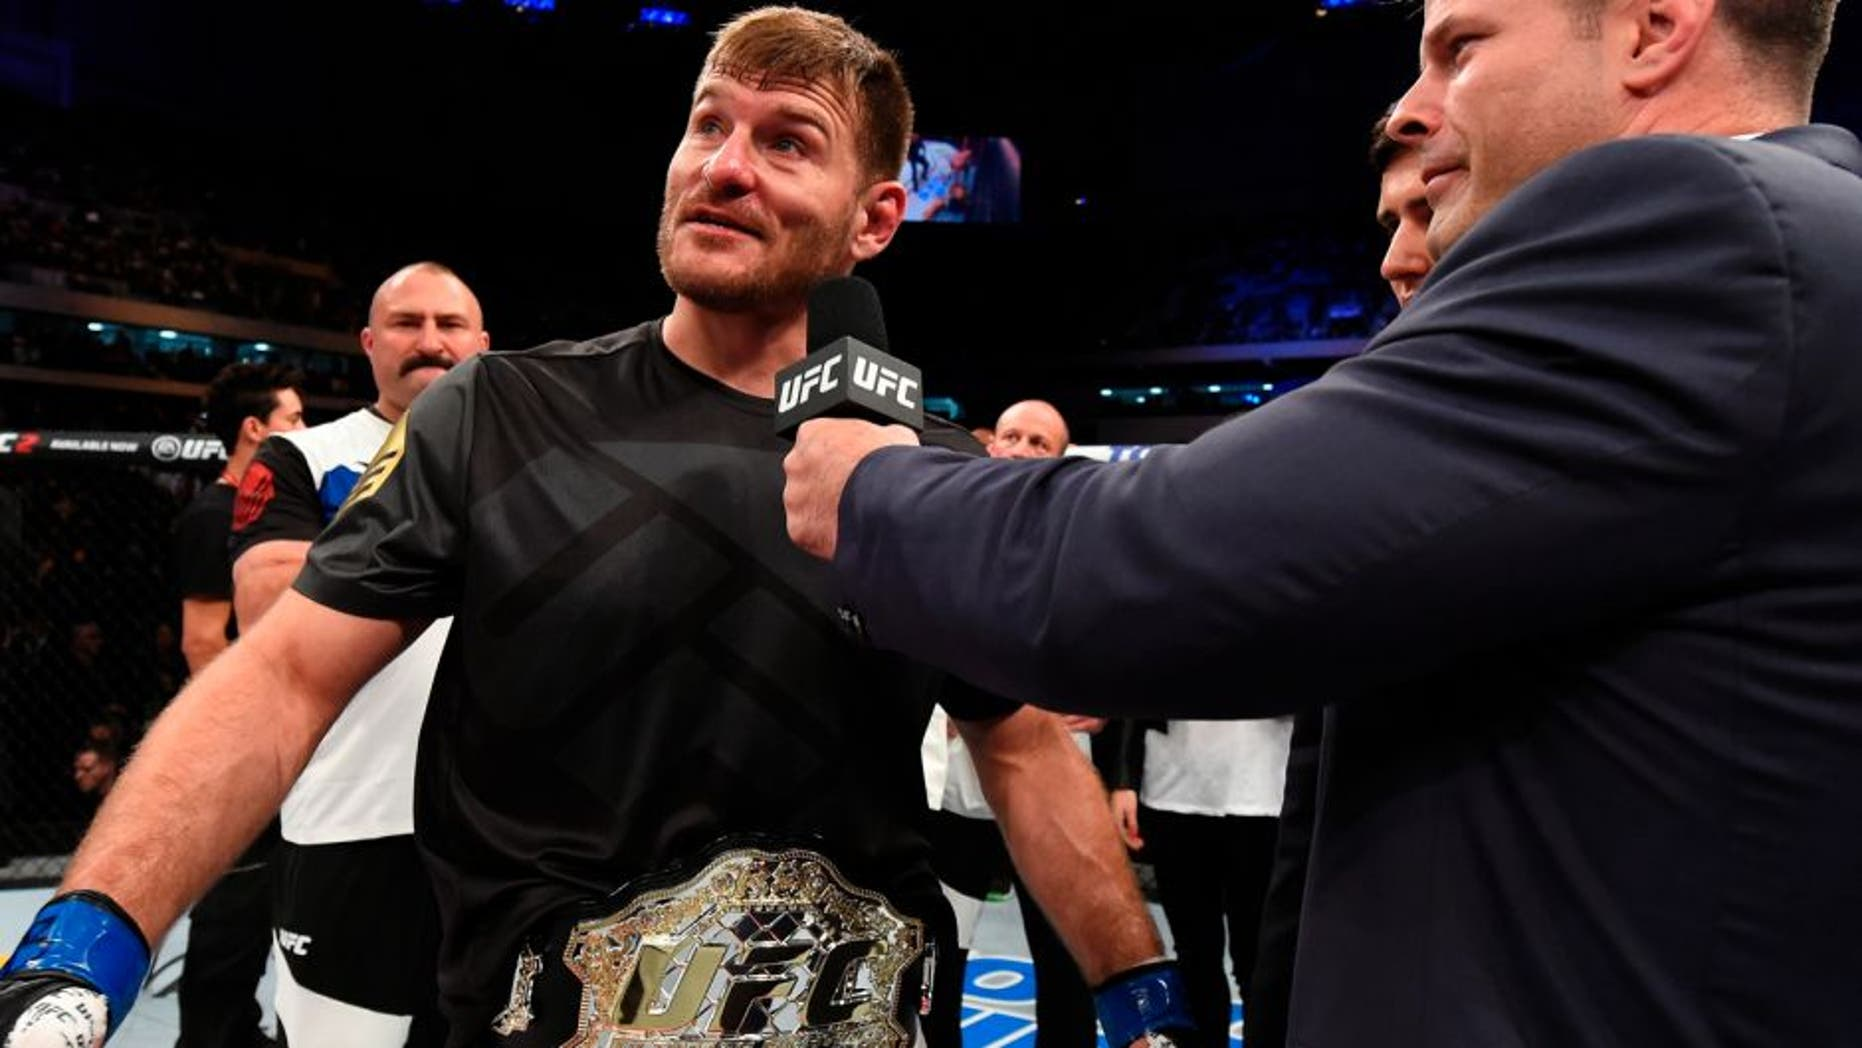 CURITIBA, BRAZIL - MAY 14: (L-R) Stipe Miocic is interviewed by UFC play-by-play broadcaster Brian Stann after defeating Fabricio Werdum of Brazil by KO in their UFC heavyweight championship bout during the UFC 198 event at Arena da Baixada stadium on May 14, 2016 in Curitiba, Parana, Brazil. (Photo by Josh Hedges/Zuffa LLC/Zuffa LLC via Getty Images)